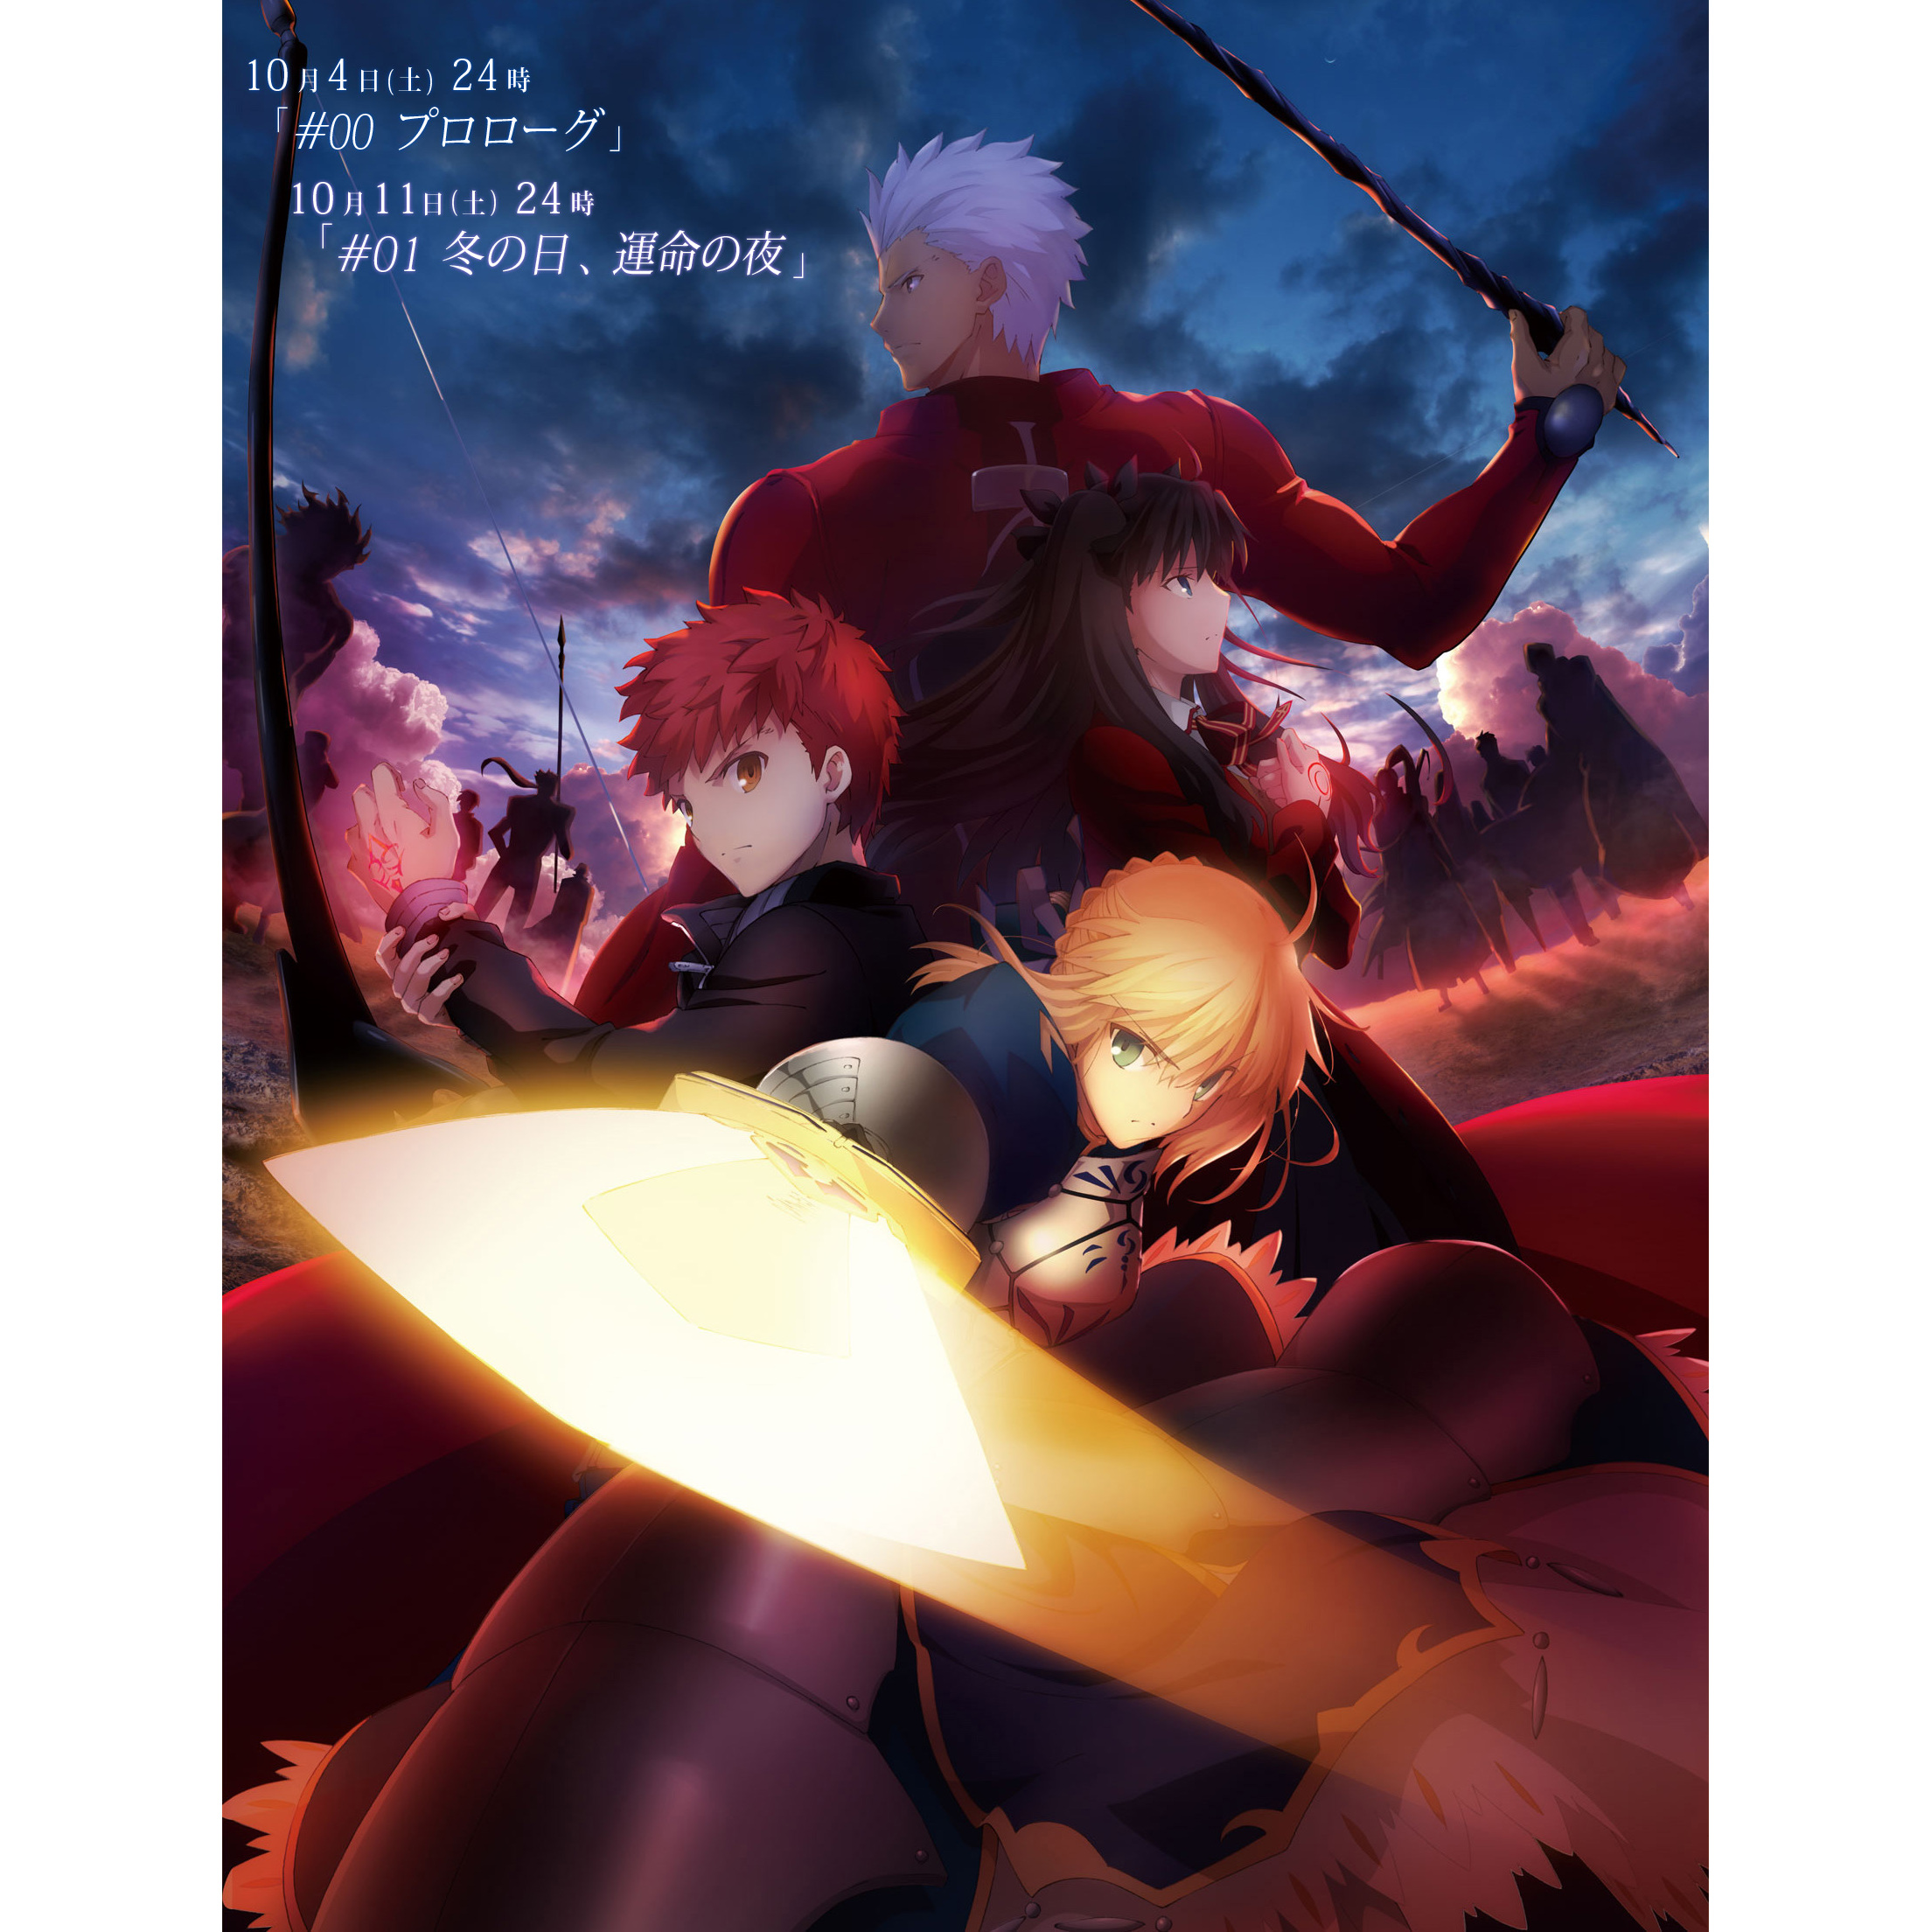 84.7点】Fate/stay night [Unlimited Blade Works](TVアニメ動画 ...